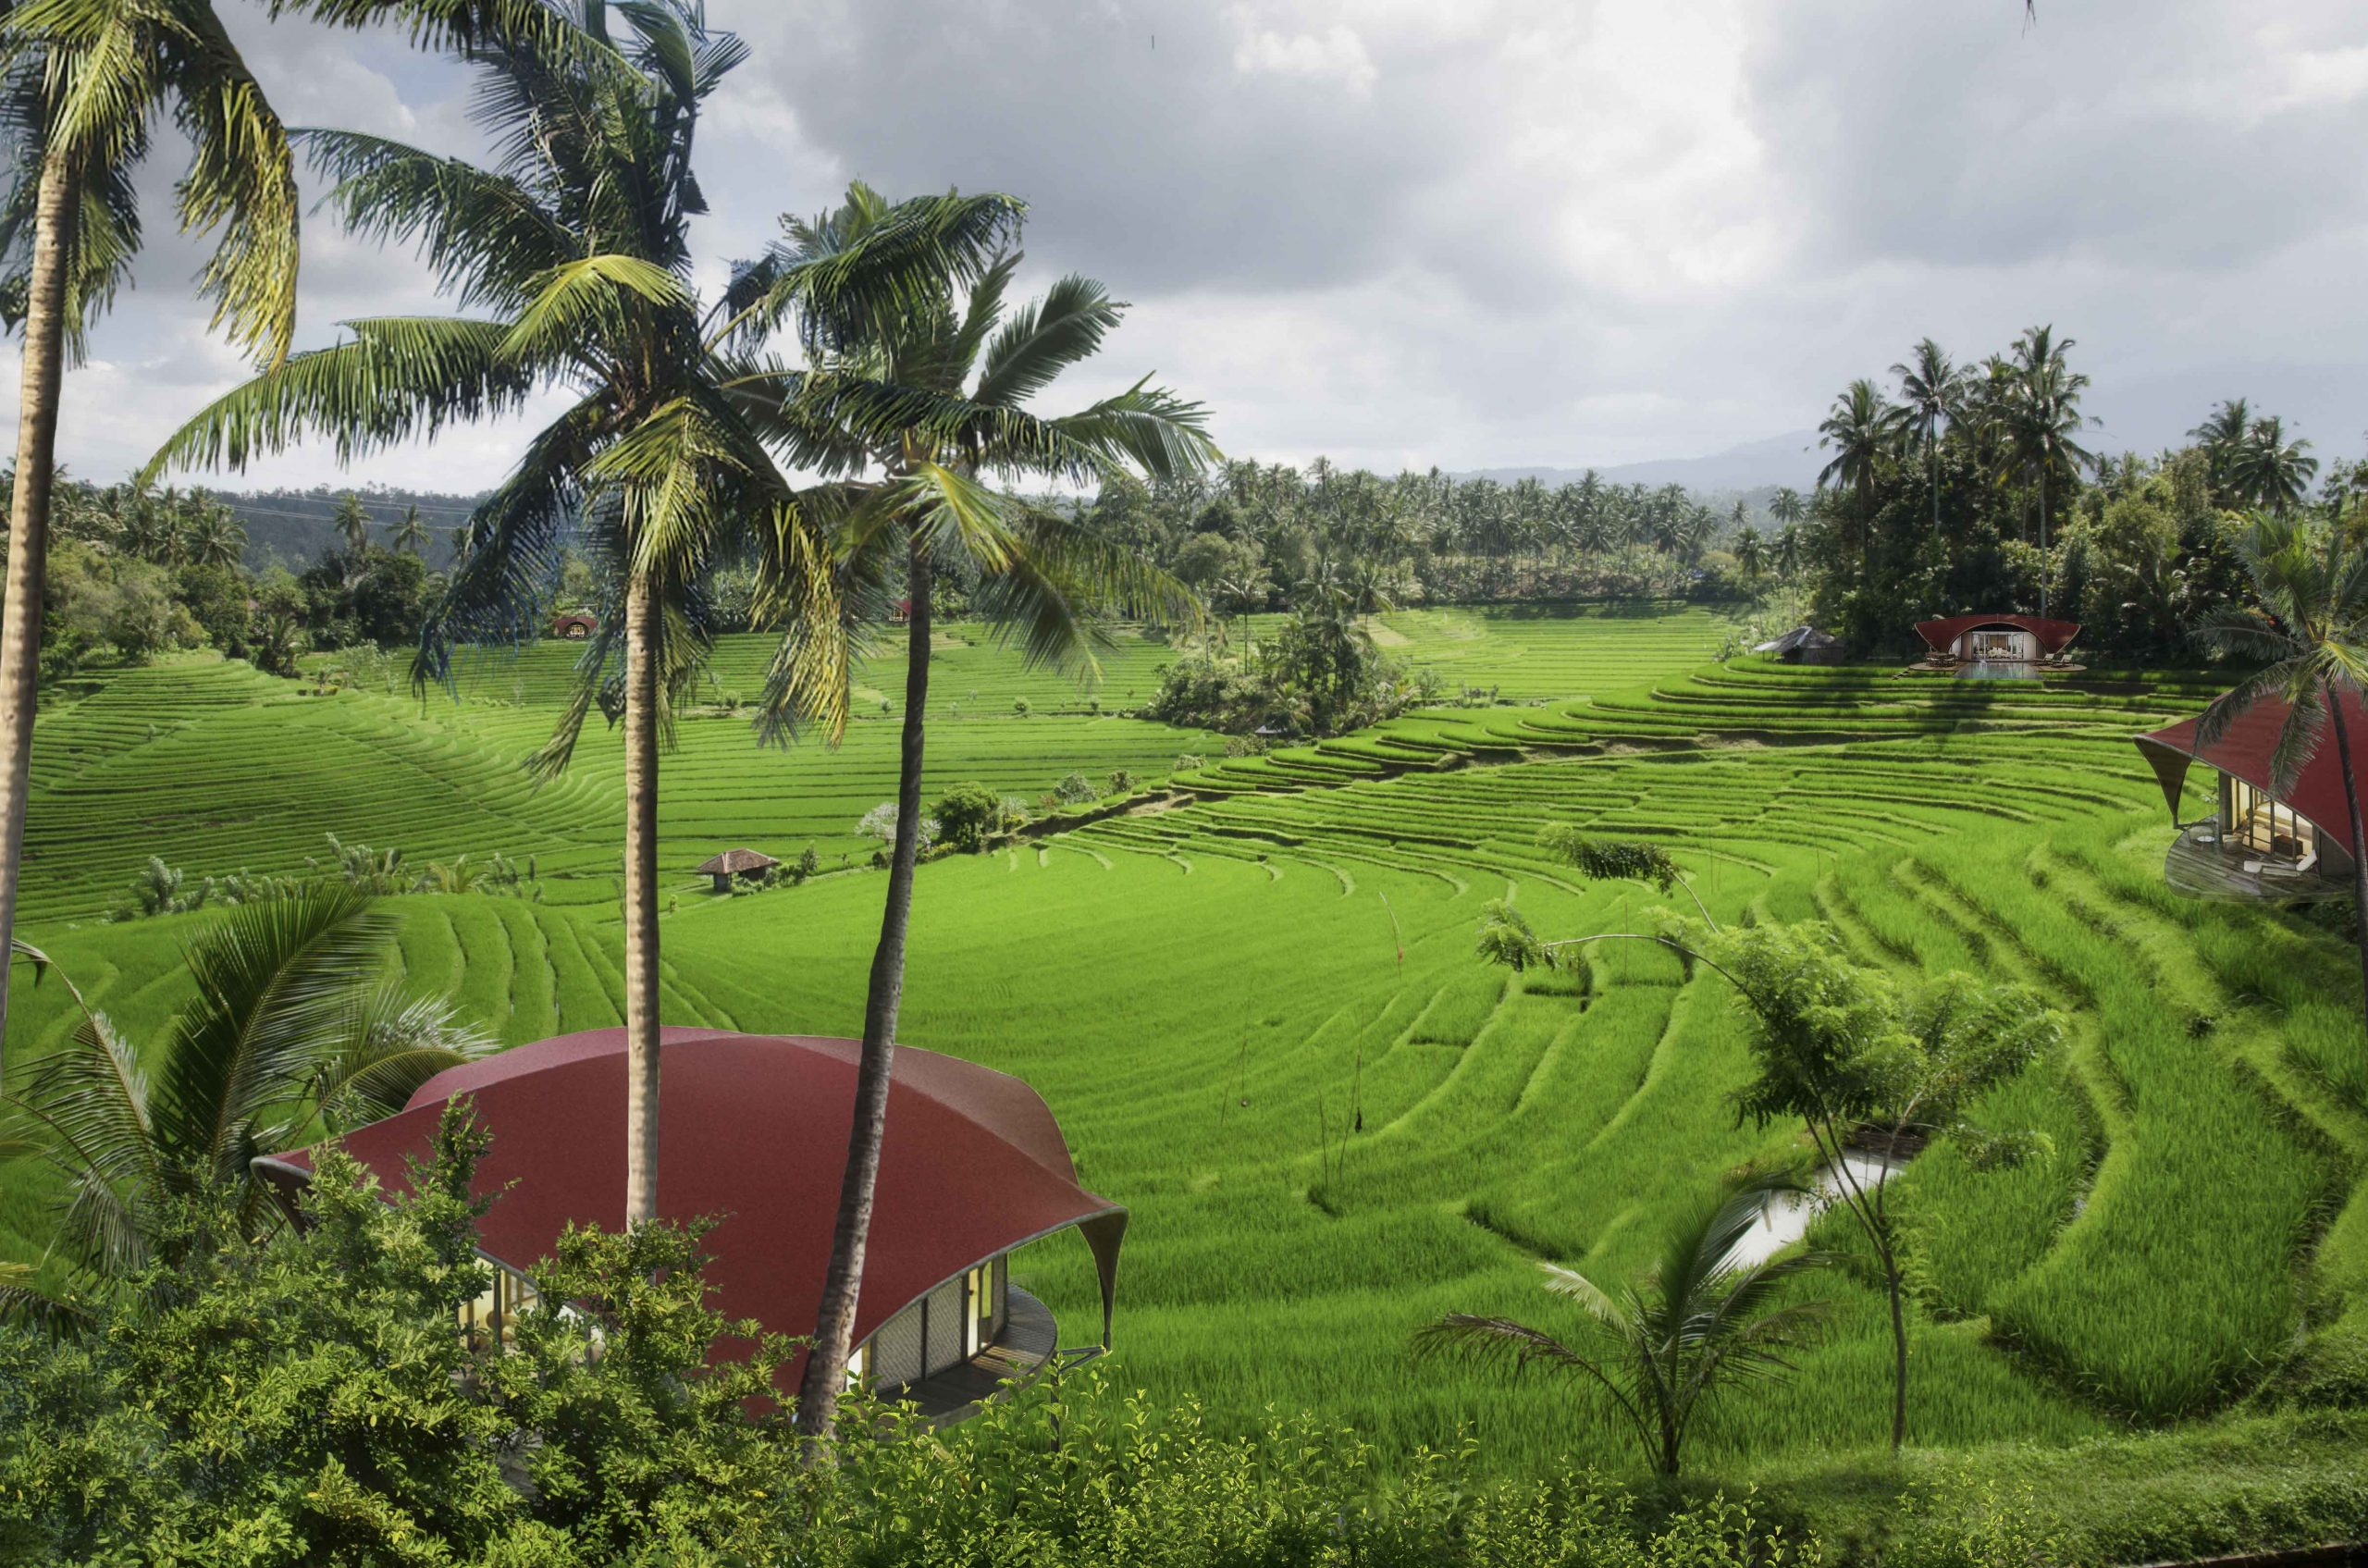 kanopya-lodge-infinity-rice-field-bali